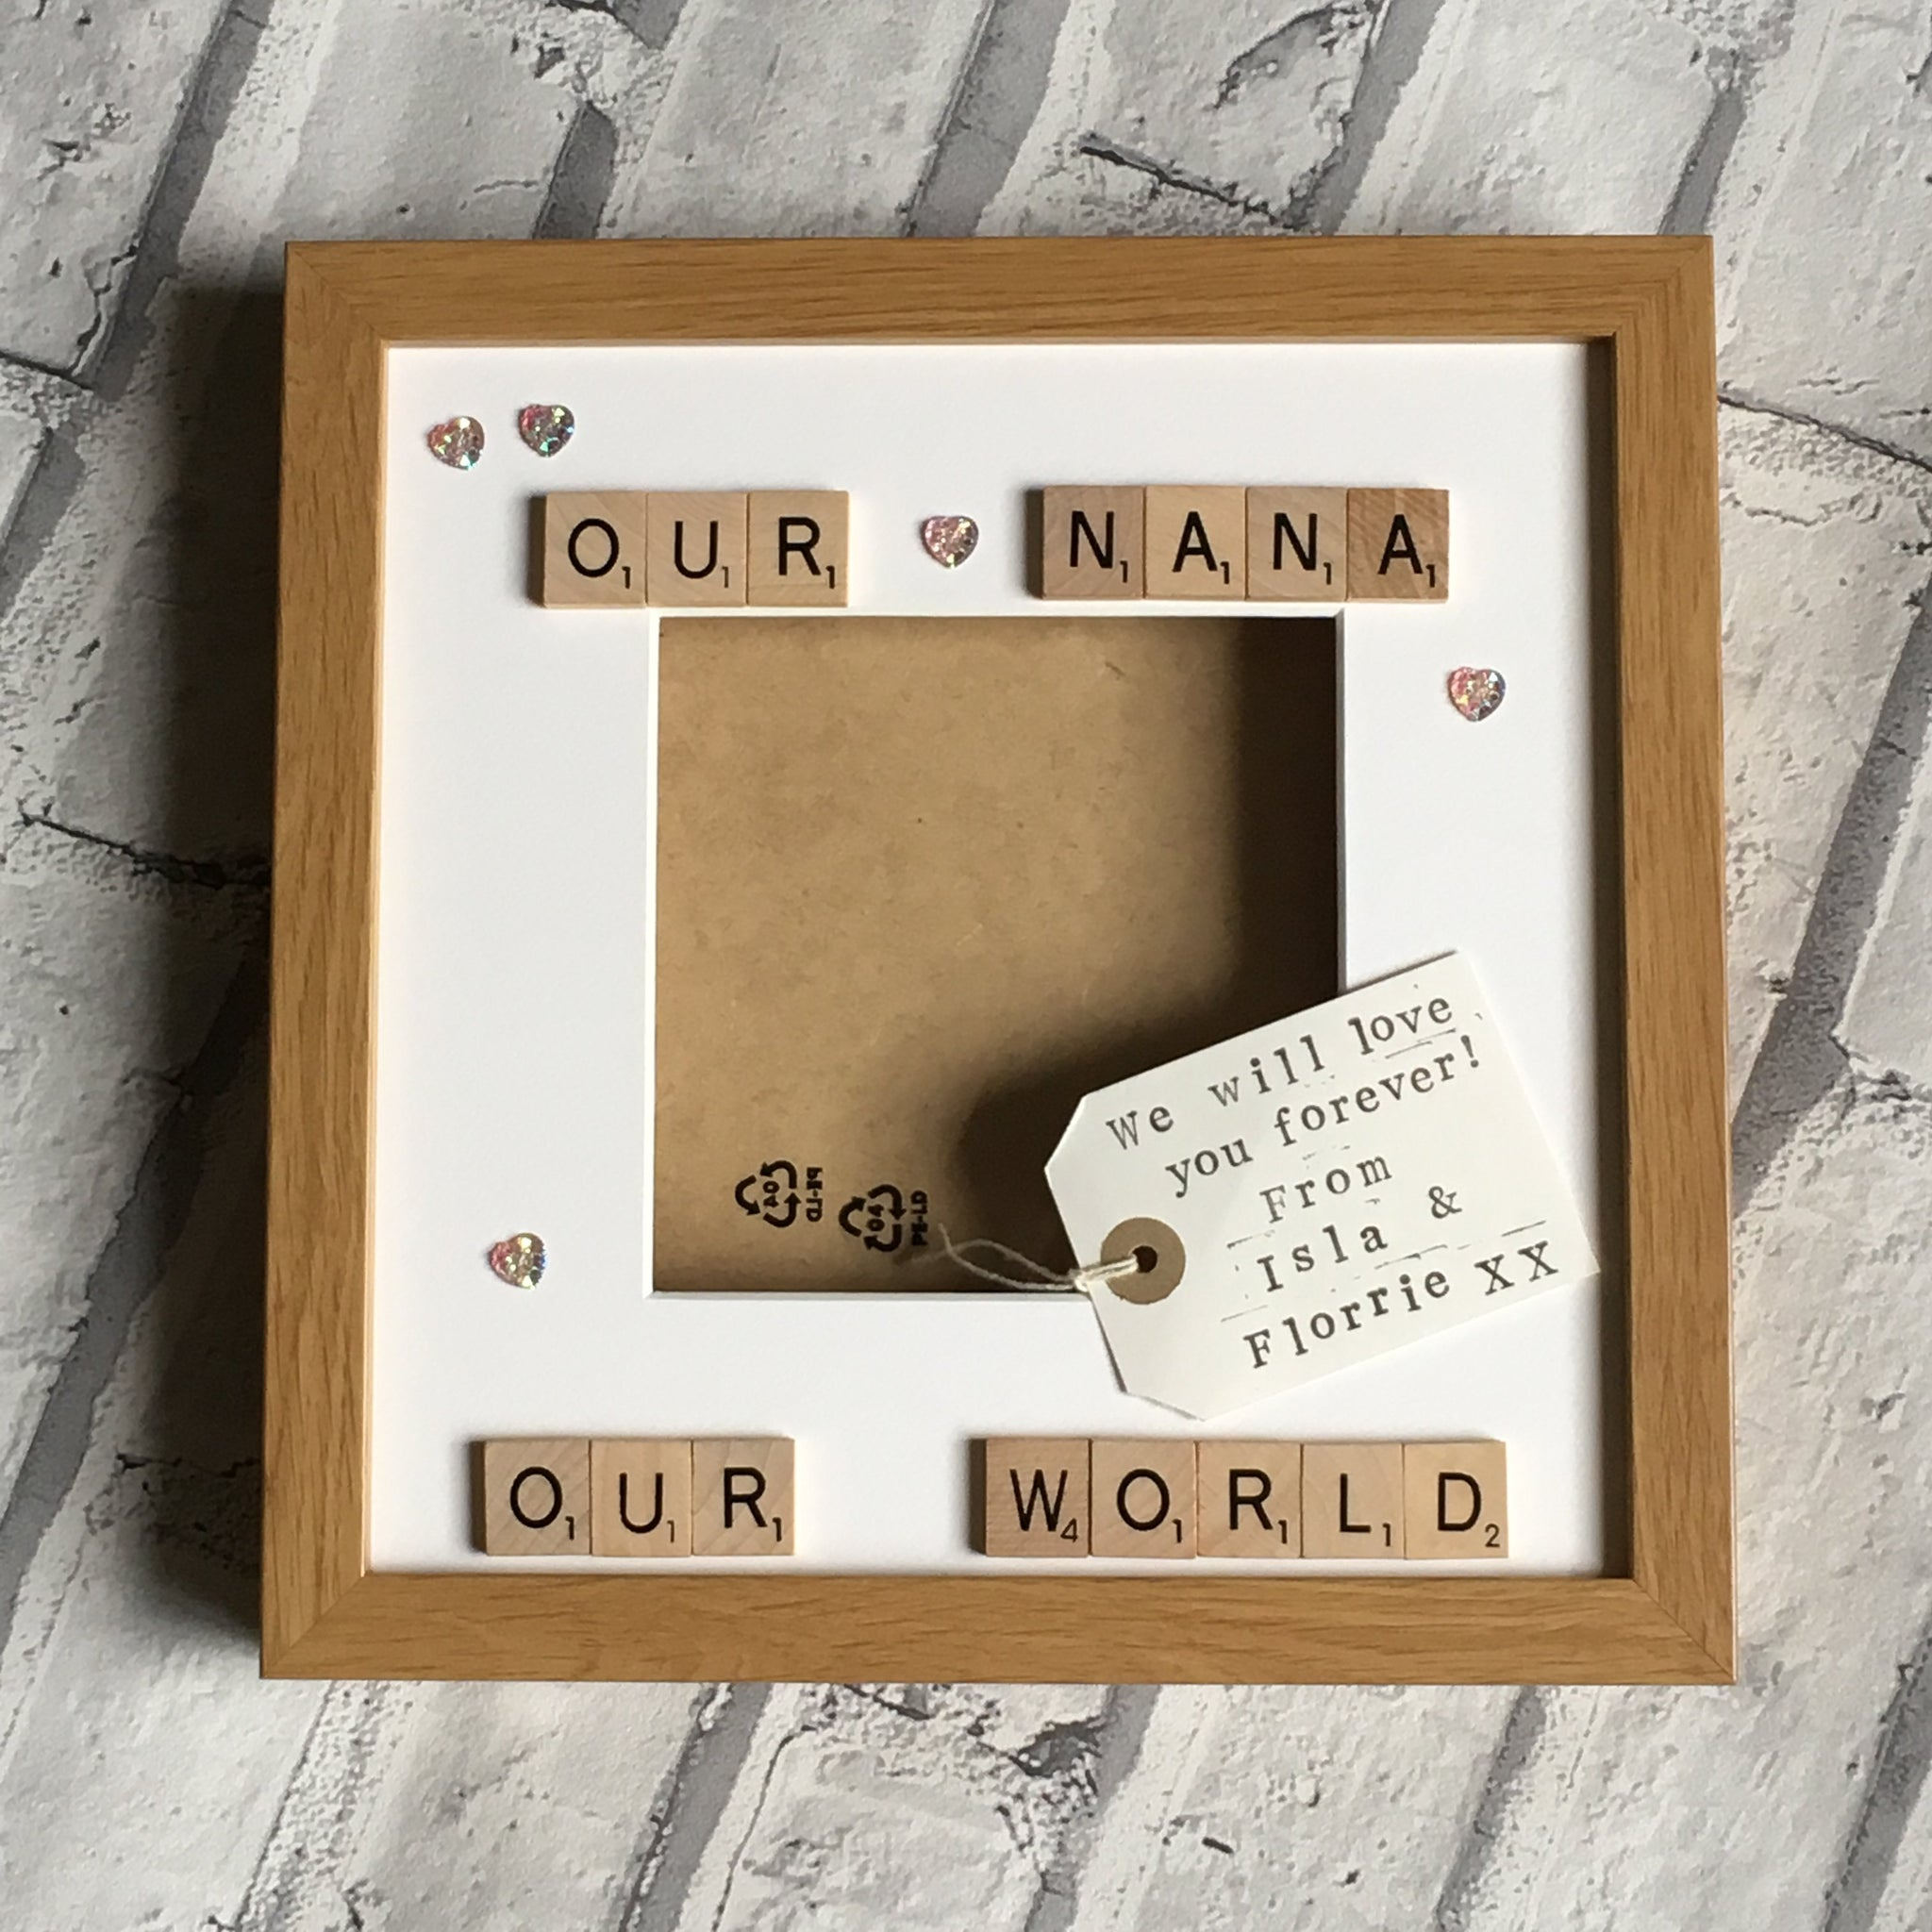 Our World Scrabble Art Photo Frame, Nana, Nanny, Grandma, Grandad, Mum, Dad, Auntie, Uncle, Personalised Scrabble Frame, Scrabble Art Frame